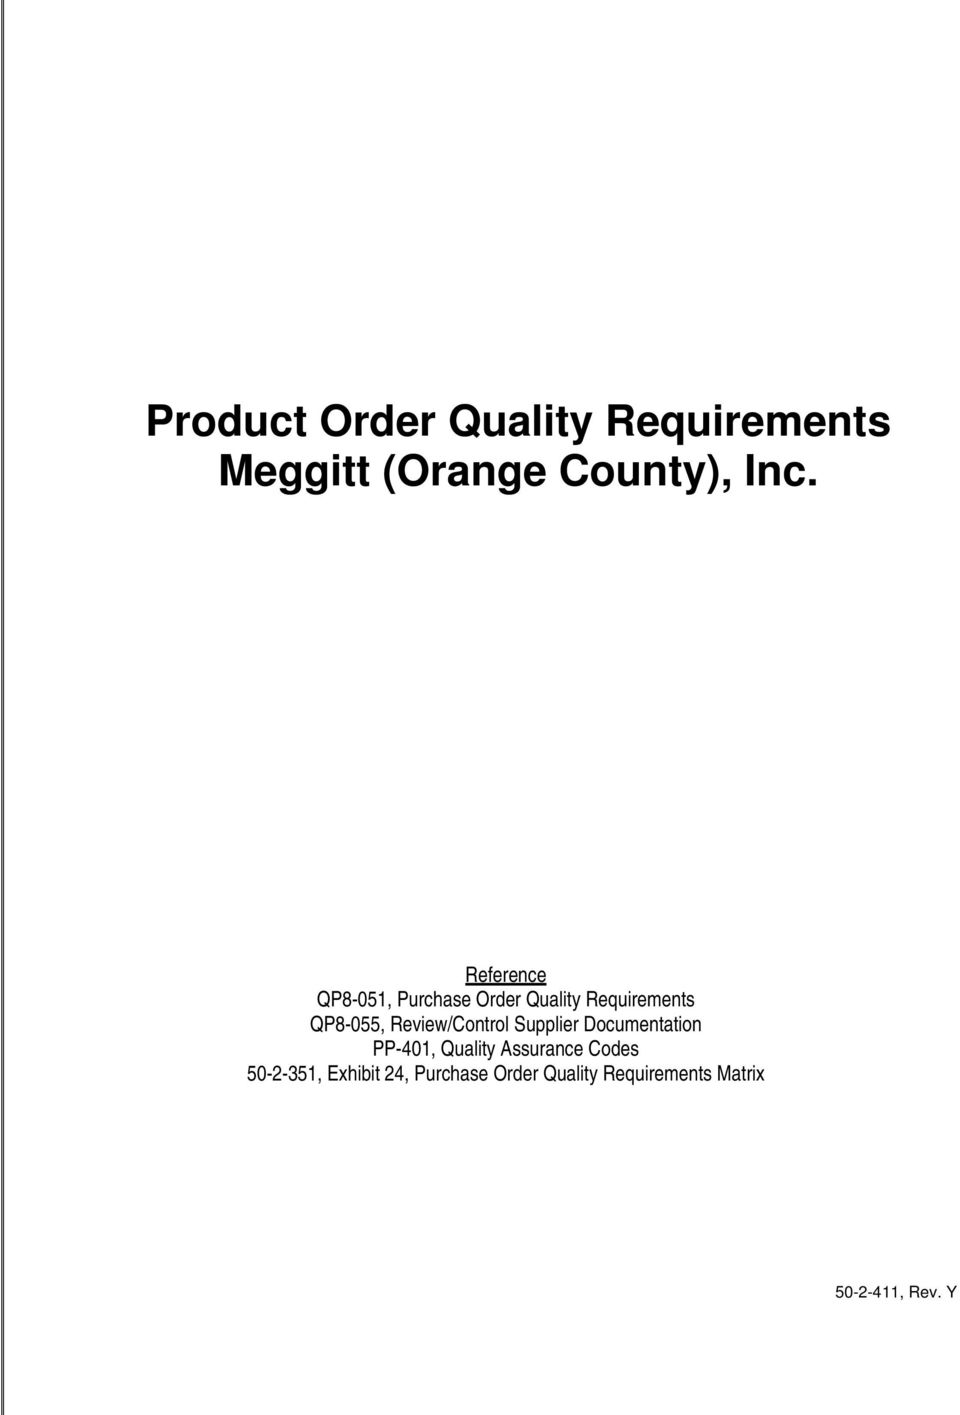 Review/Control Supplier Documentation PP-401, Quality Assurance